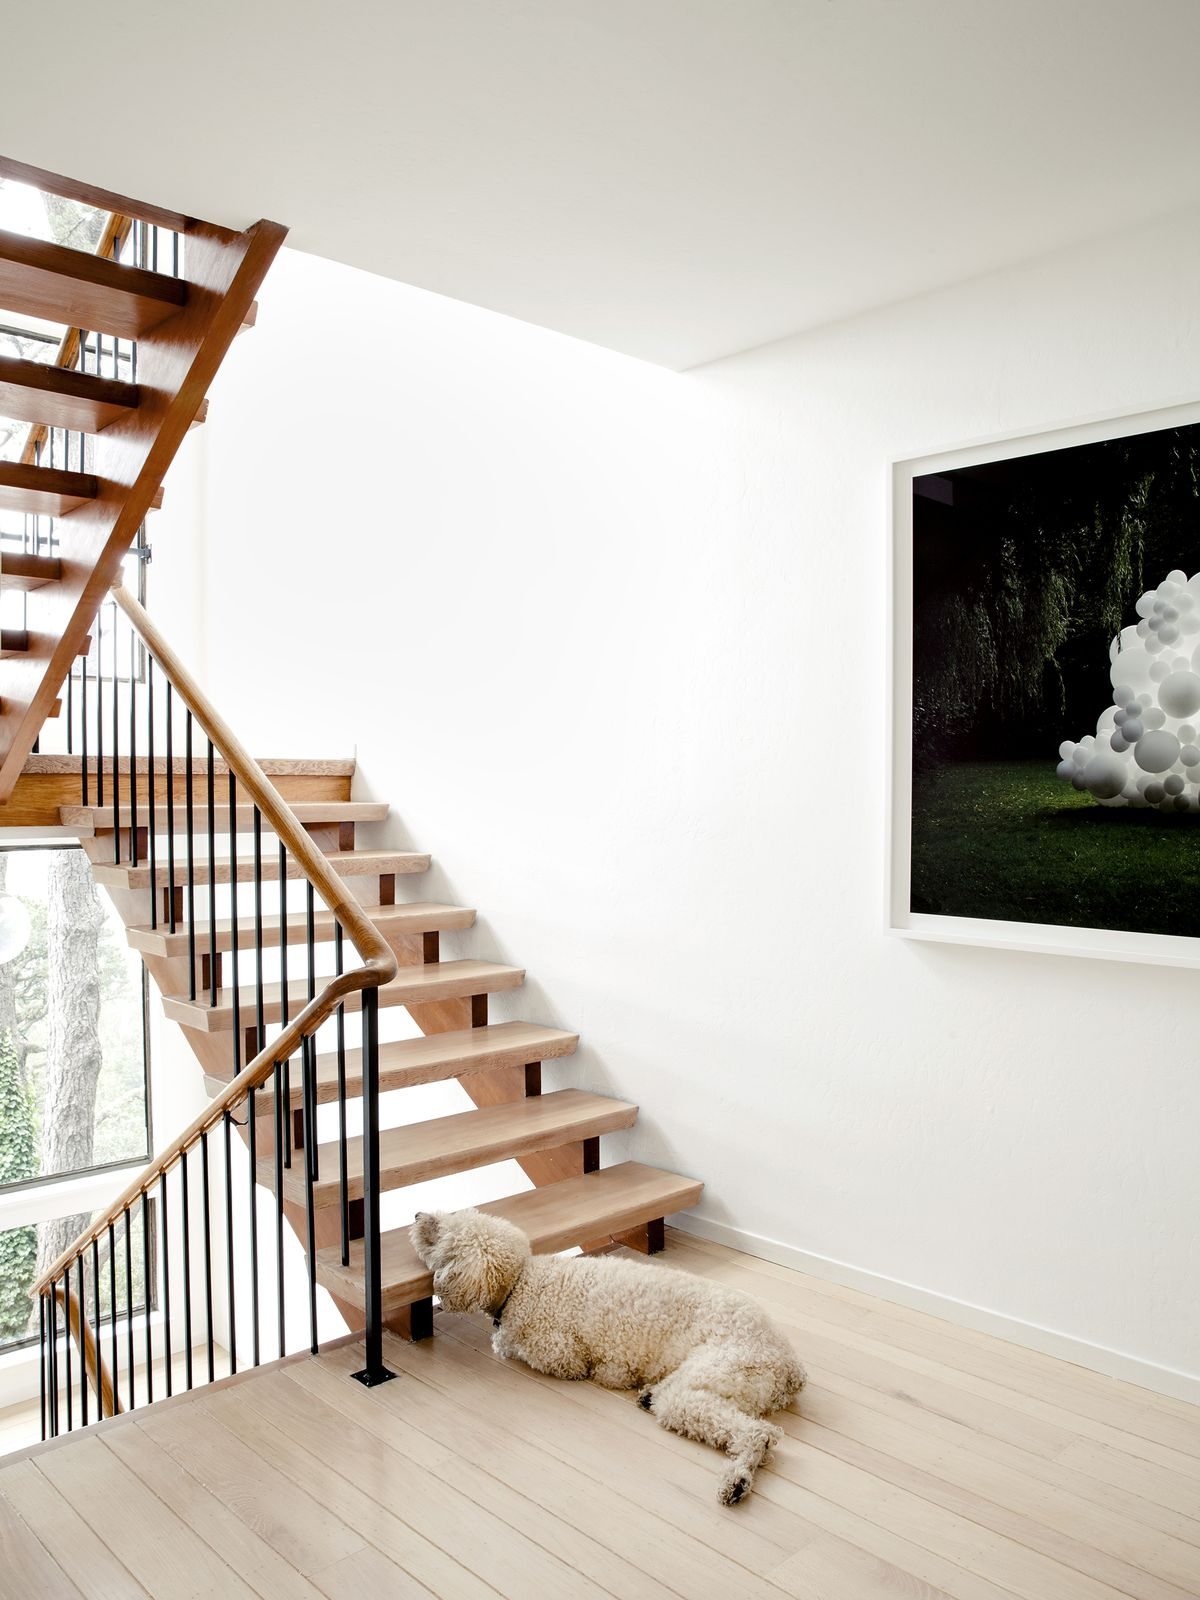 A wooden staircase in a house that has white walls. There is a large tan dog laying their head on one of the stairs.